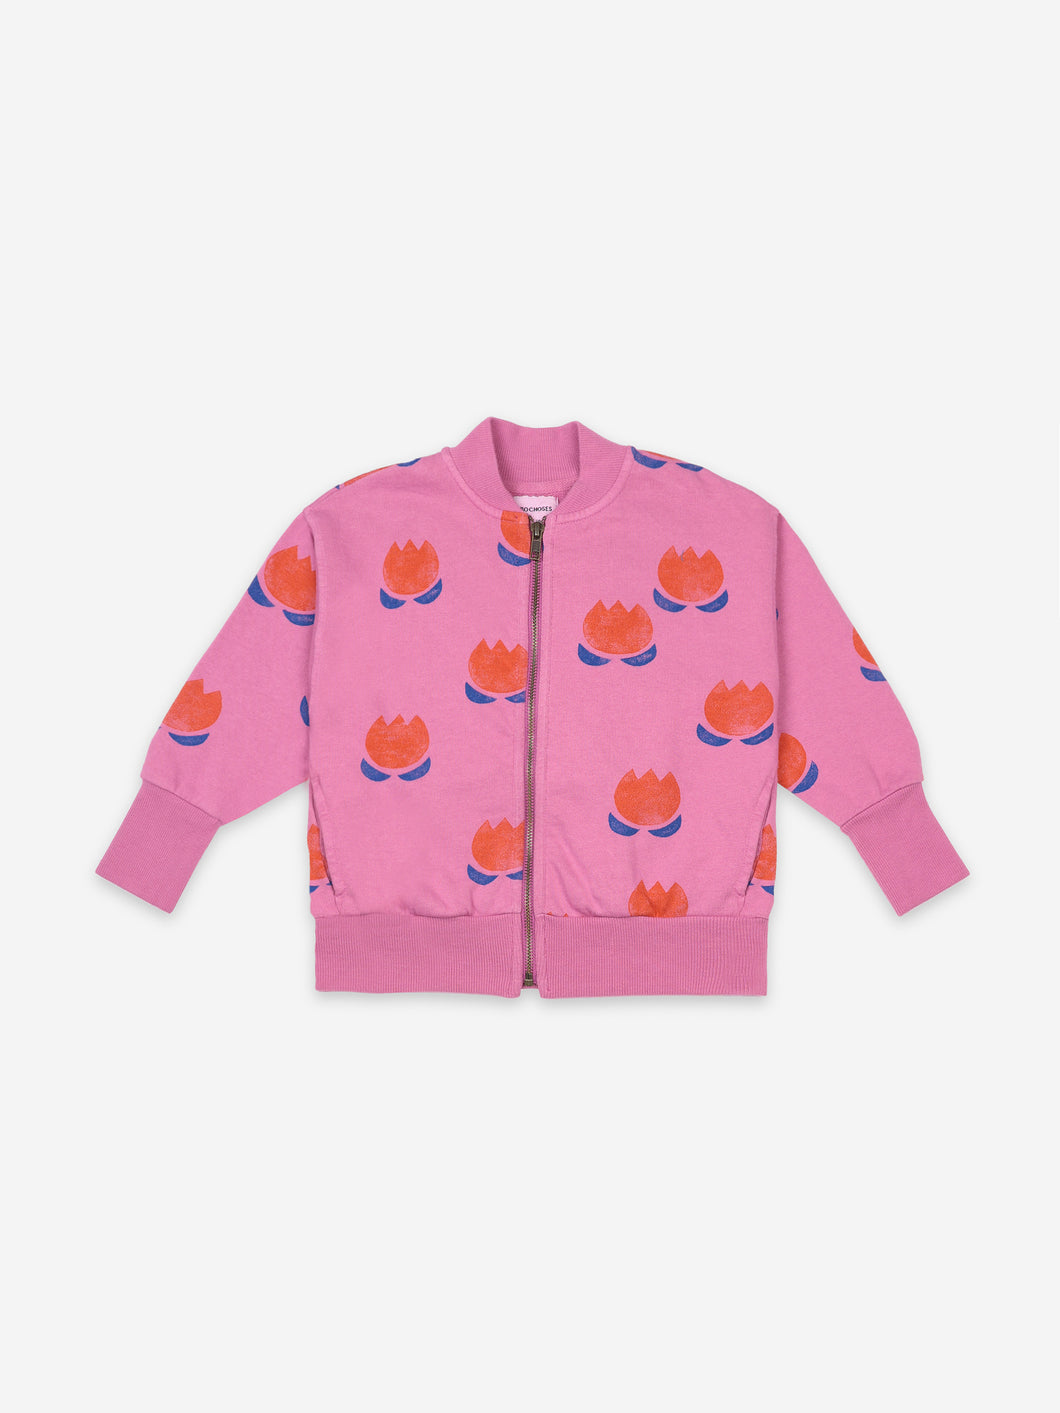 Chocolate Flowers All Over Zipped Sweatshirt